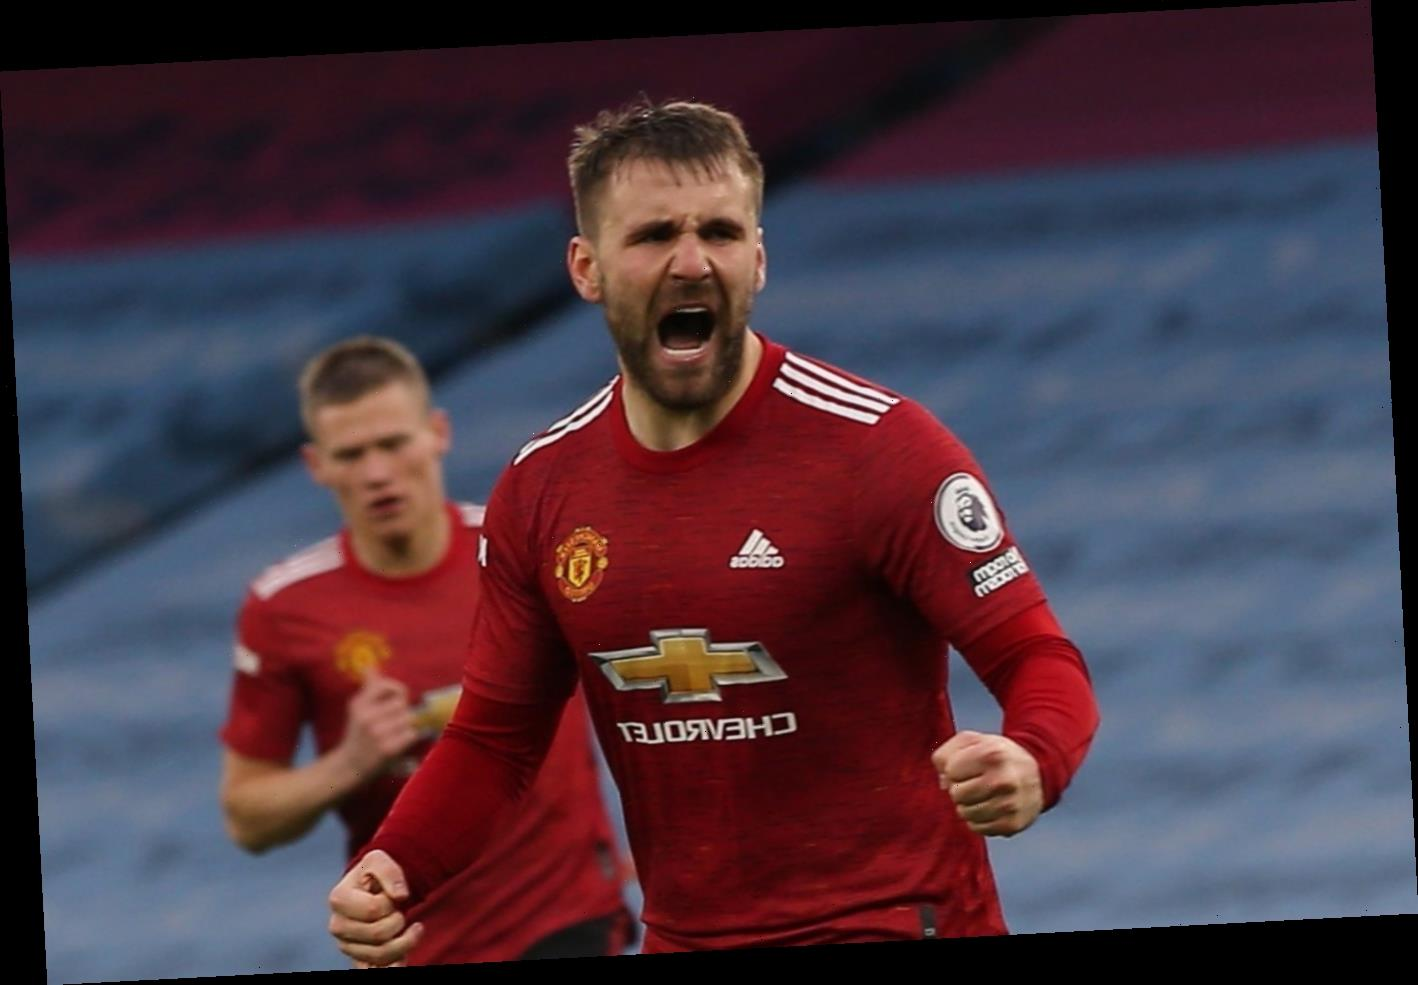 Man Utd to open contract talks with Luke Shaw after forgotten star turns career around and earns England recall